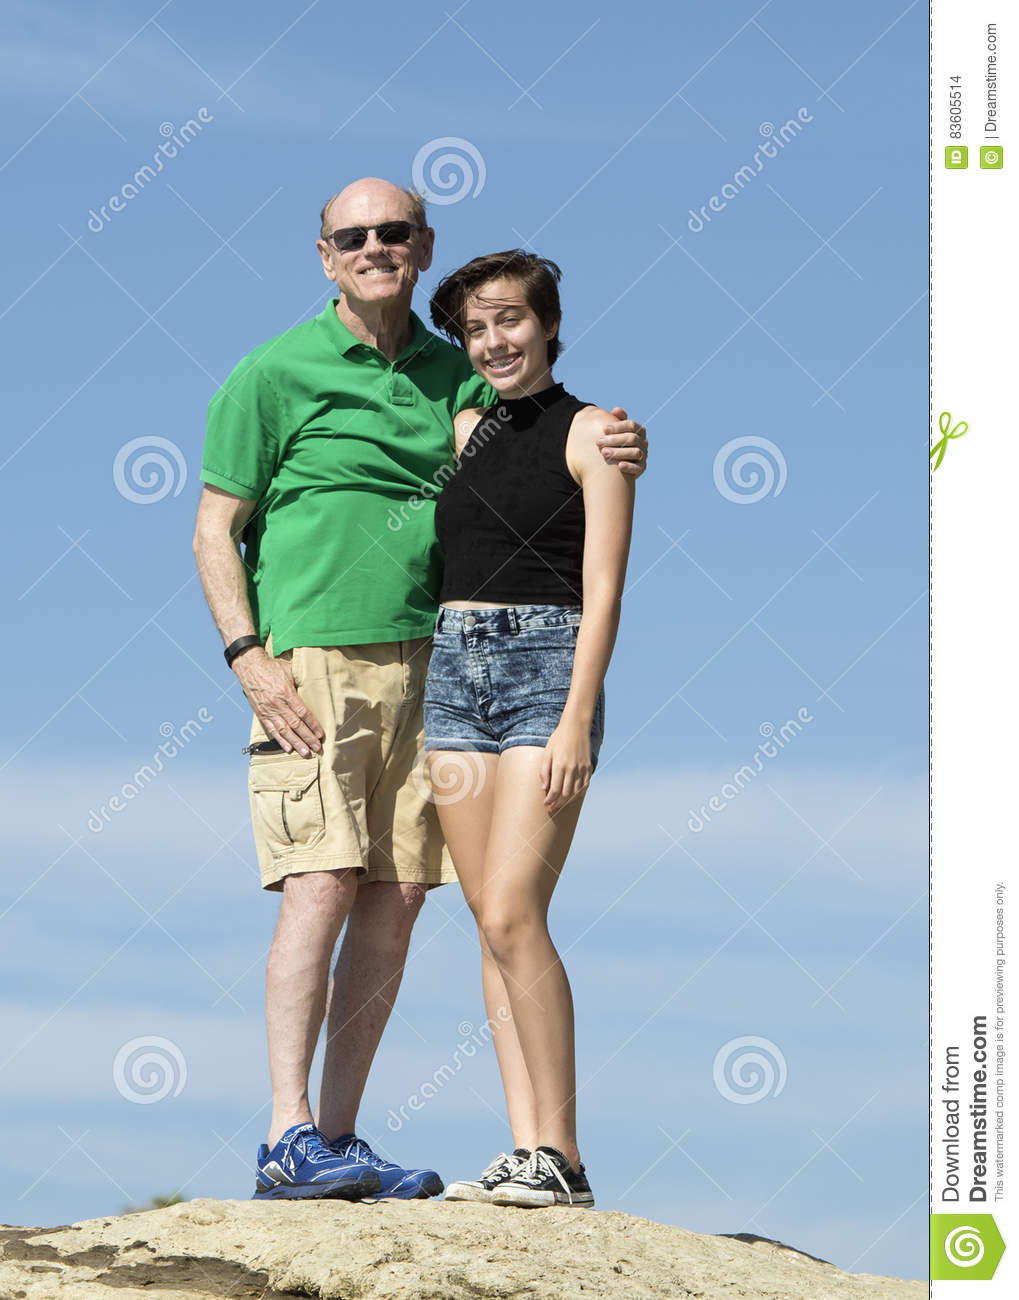 Elderly grandfather and teenage granddaughter standing on a rock